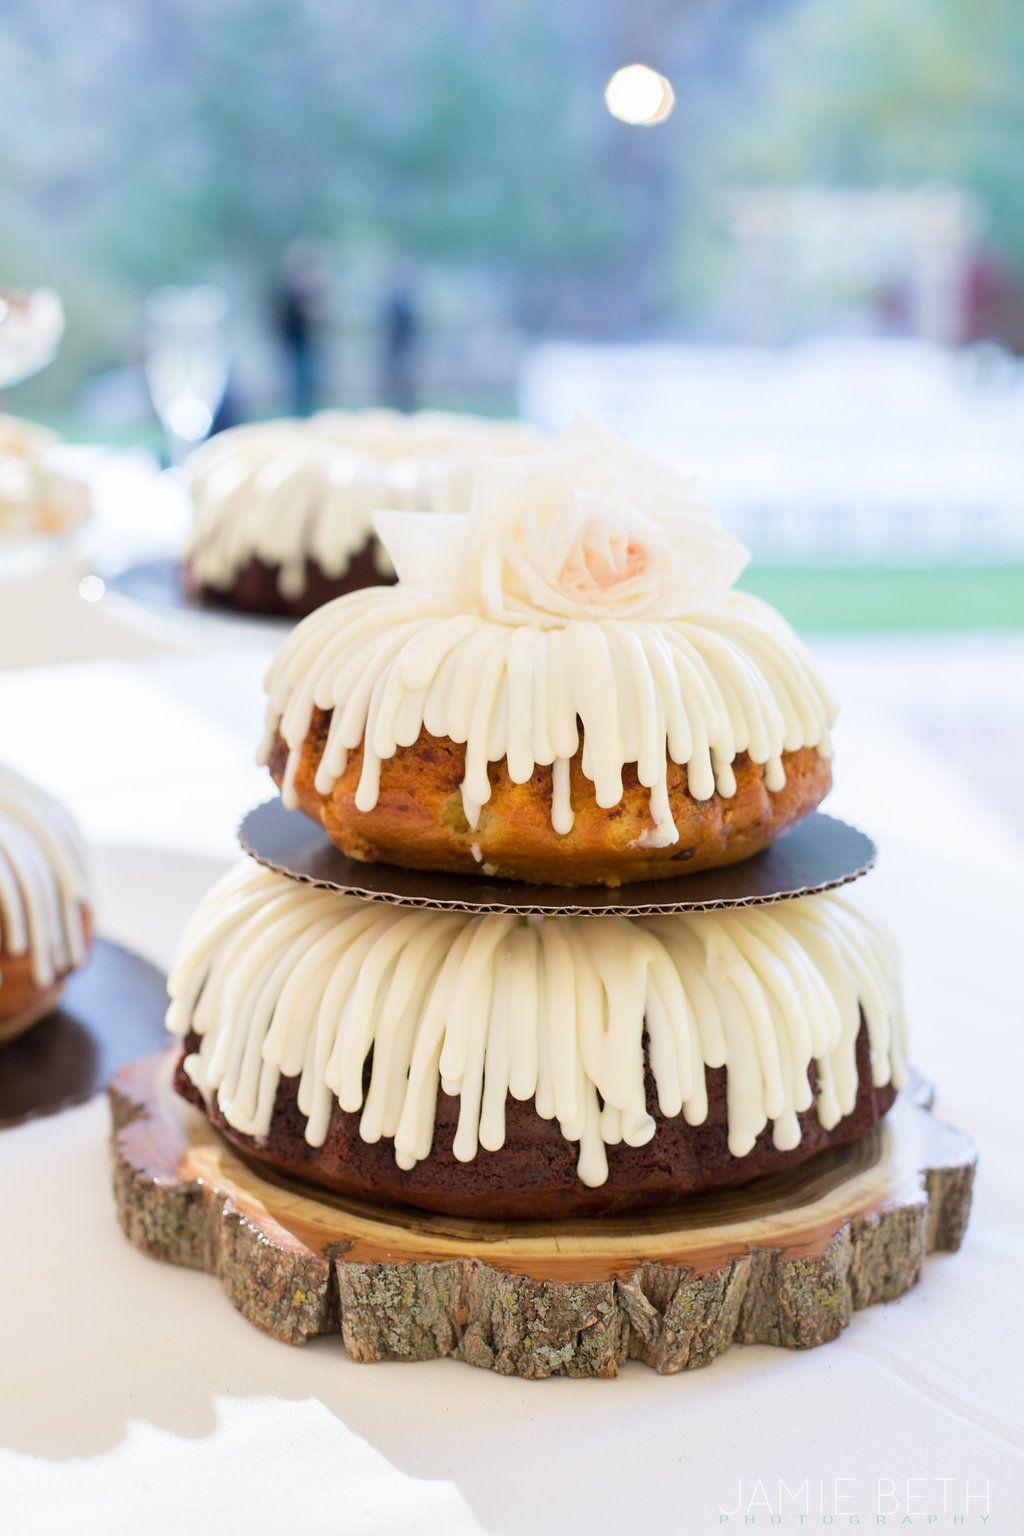 Nothing Bundt Cakes Wedding Cake In Boulder Colorado Photographed By Jamie Beth Photography